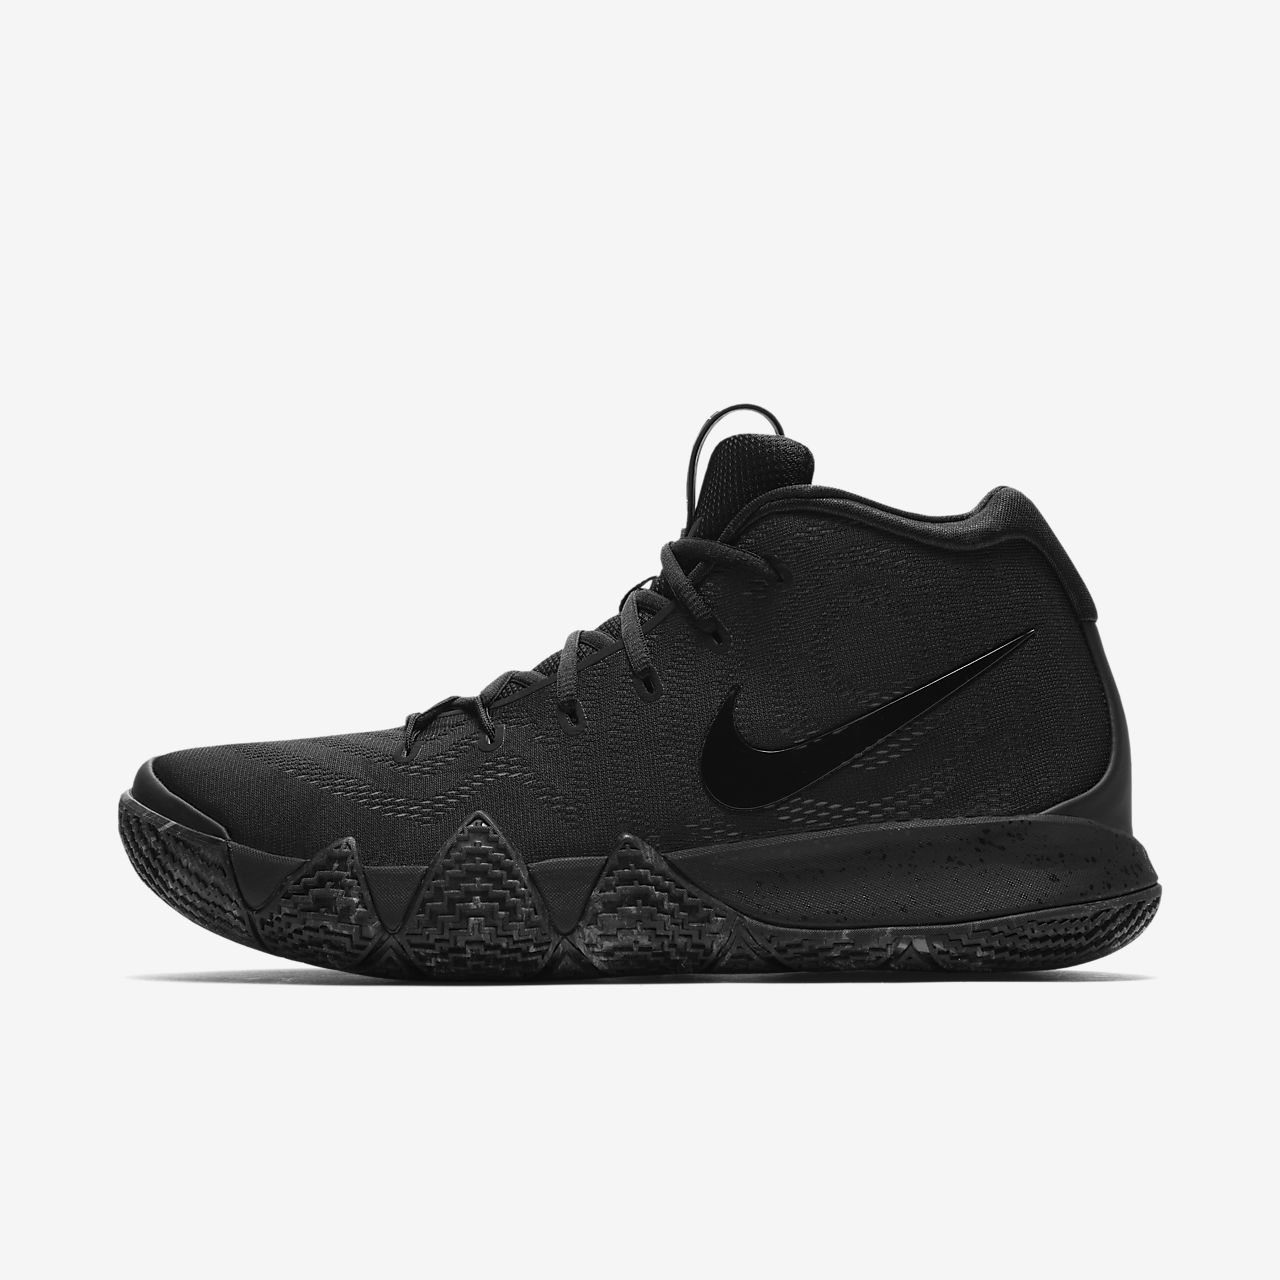 best cheap 53a09 074e8 Low Resolution Kyrie 4 Basketball Shoe Kyrie 4 Basketball Shoe